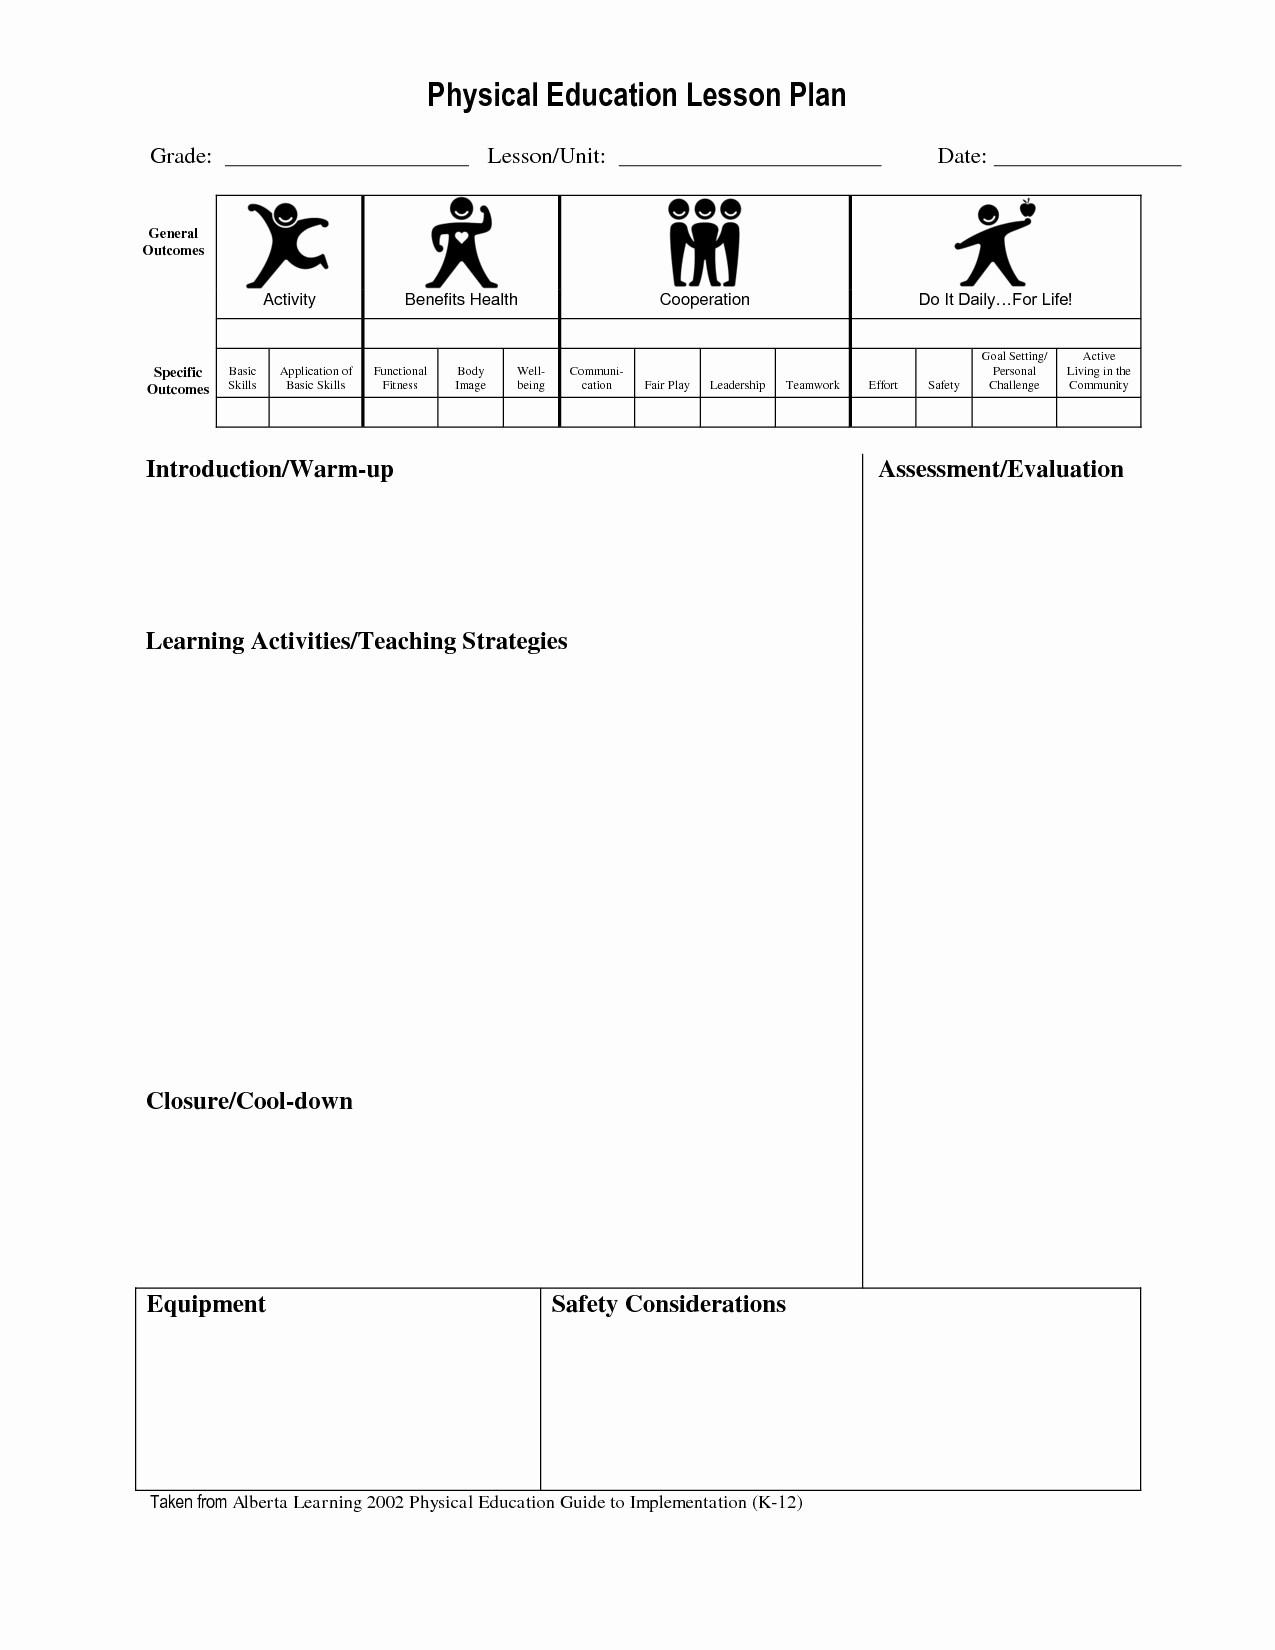 Blank Physical Education Lesson Plan Template